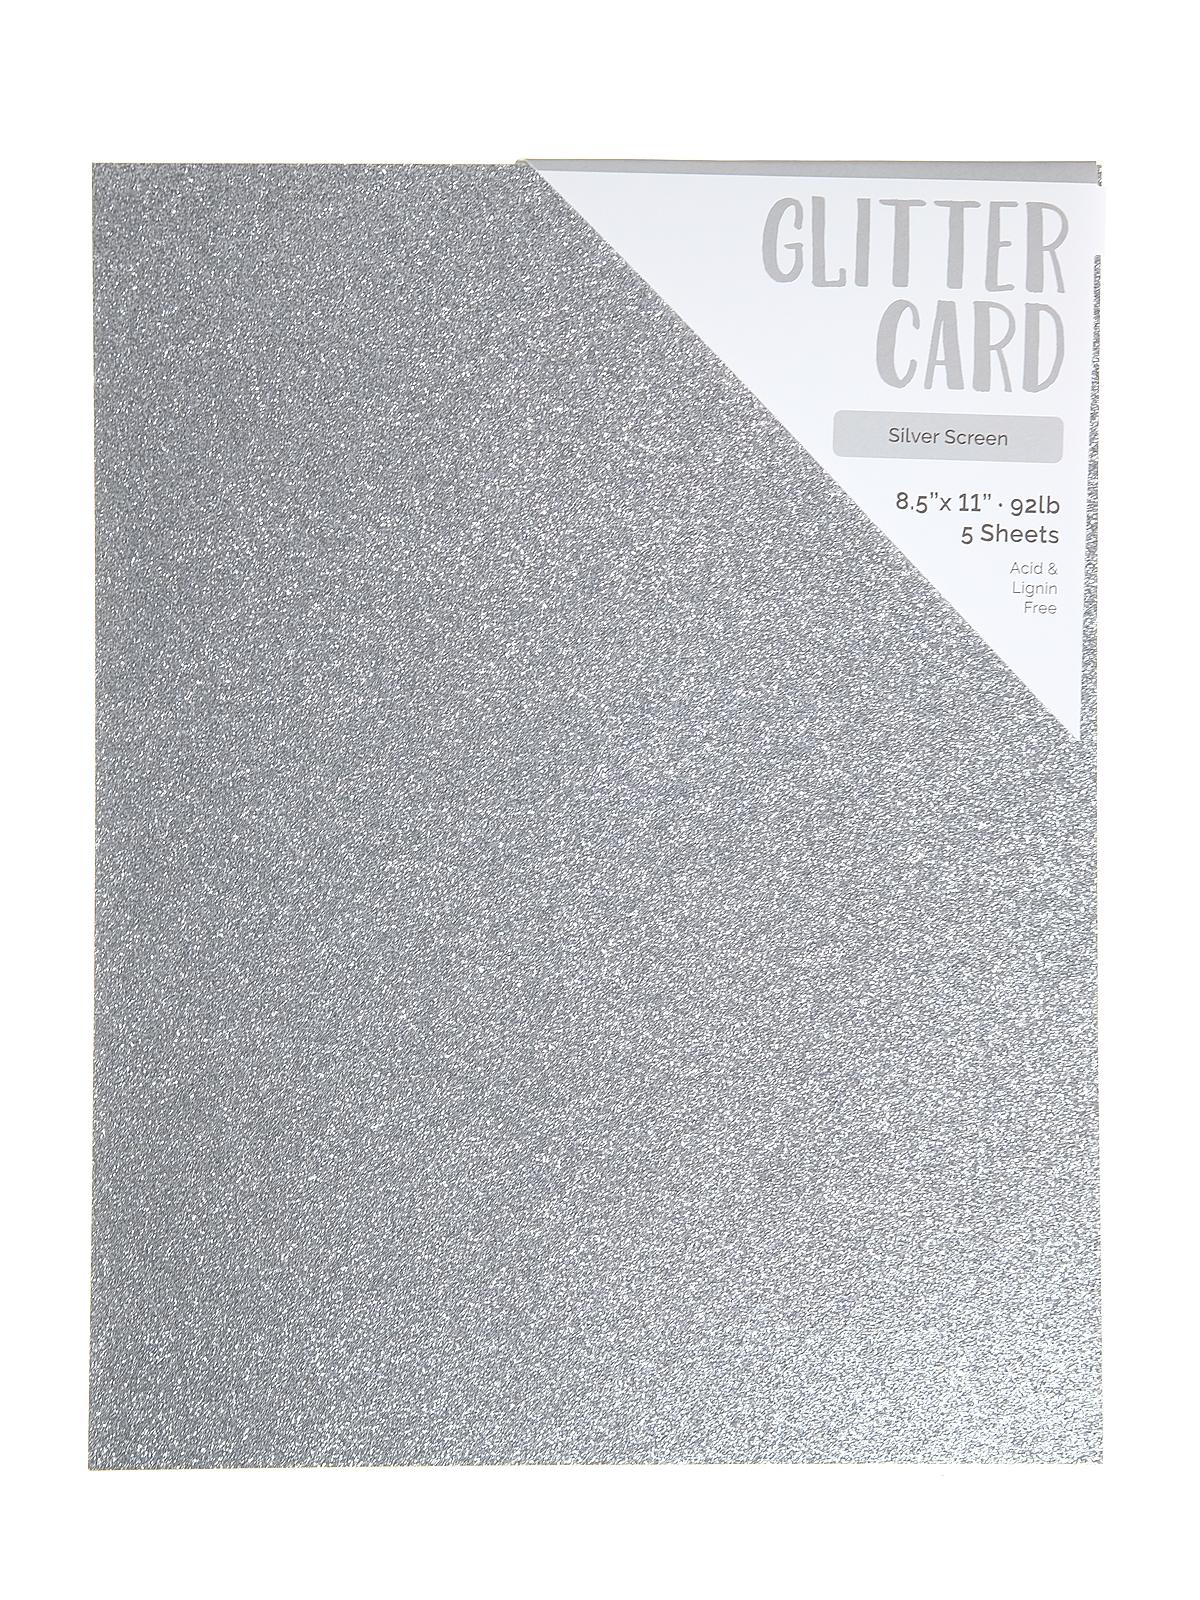 Craft Perfect Glitter Card